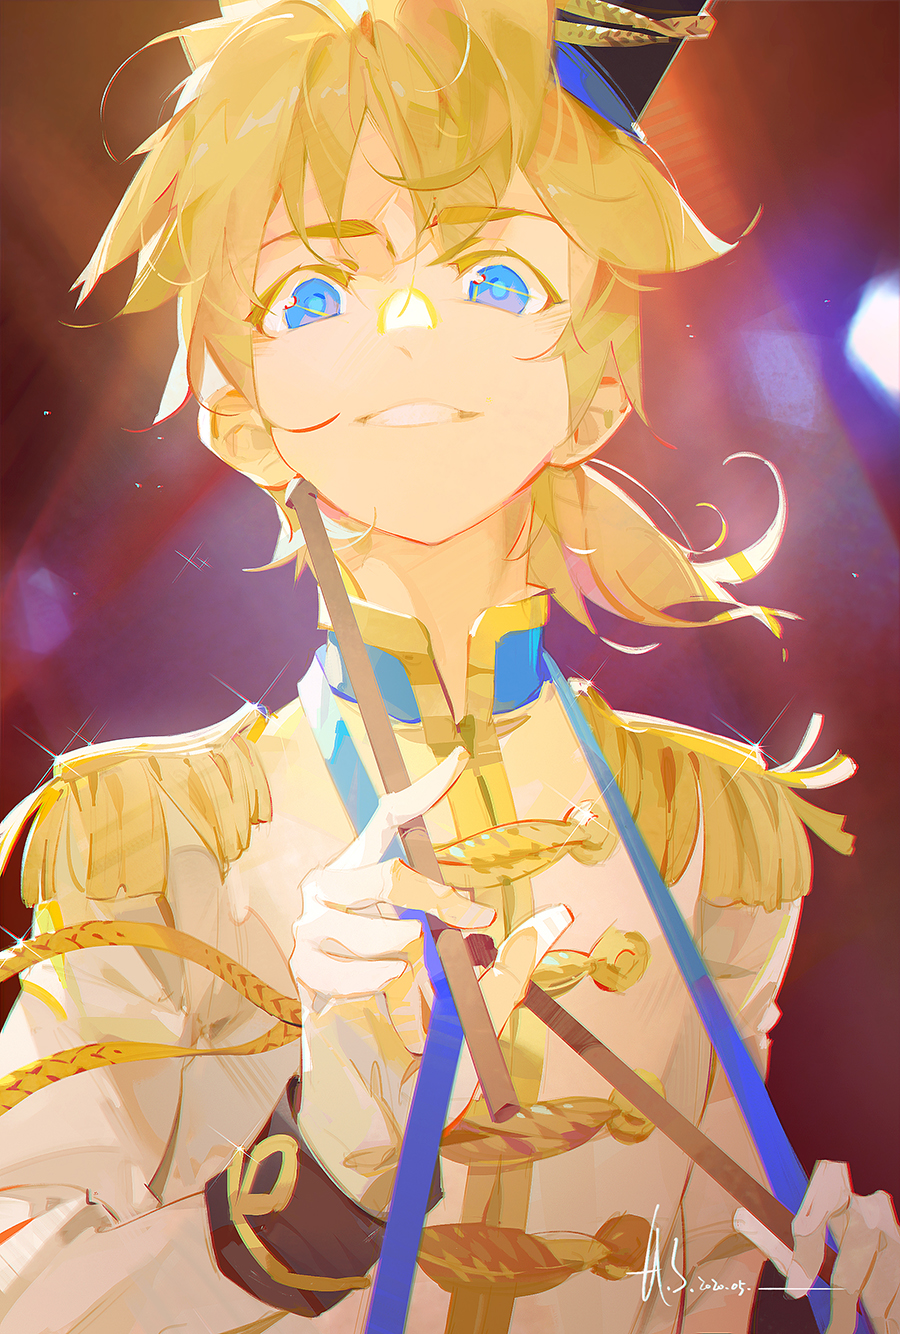 1boy a-shacho blonde_hair blue_eyes commentary dated drumsticks epaulettes glint gloves grin hat highres holding holding_drumsticks kagamine_len long_sleeves male_focus ponytail short_ponytail signature smile solo upper_body vocaloid white_gloves